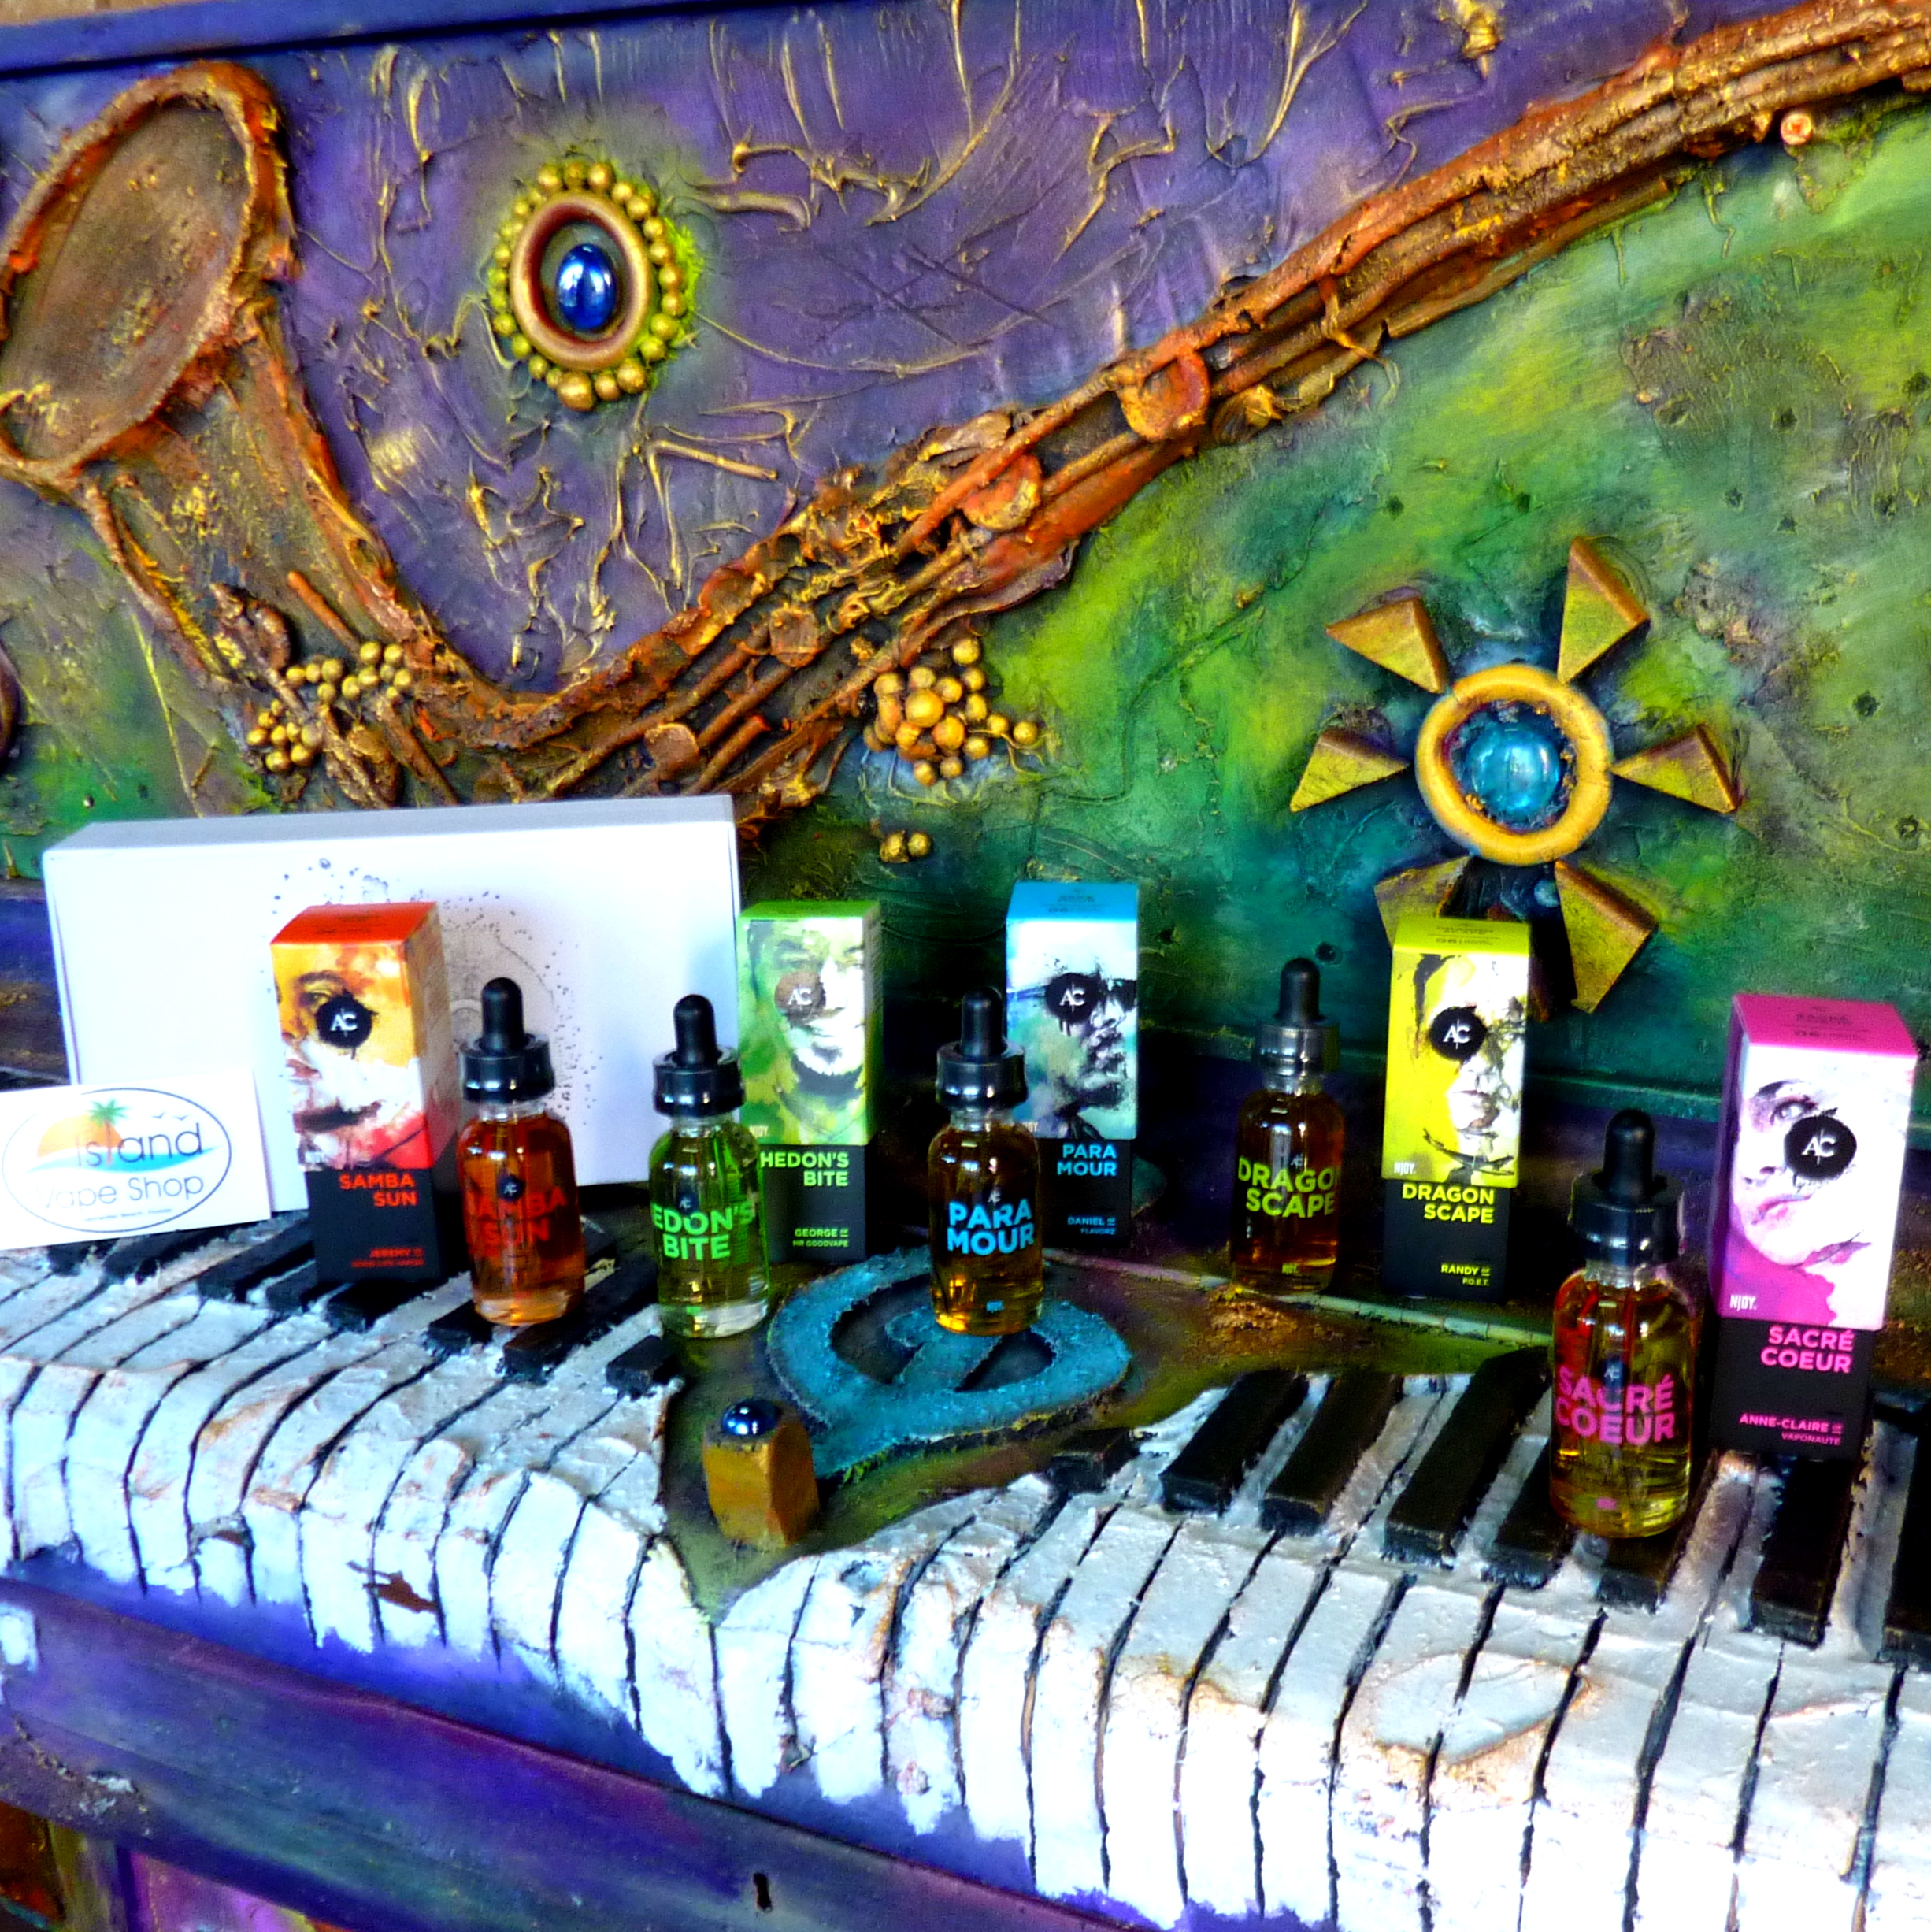 island_vape_shop_artist_collection_njoy_eliquid_clearwater_beach_njoyac_dragon_scape_sacre_coeur_paramour_hedons_bite_samba_sun.jpg